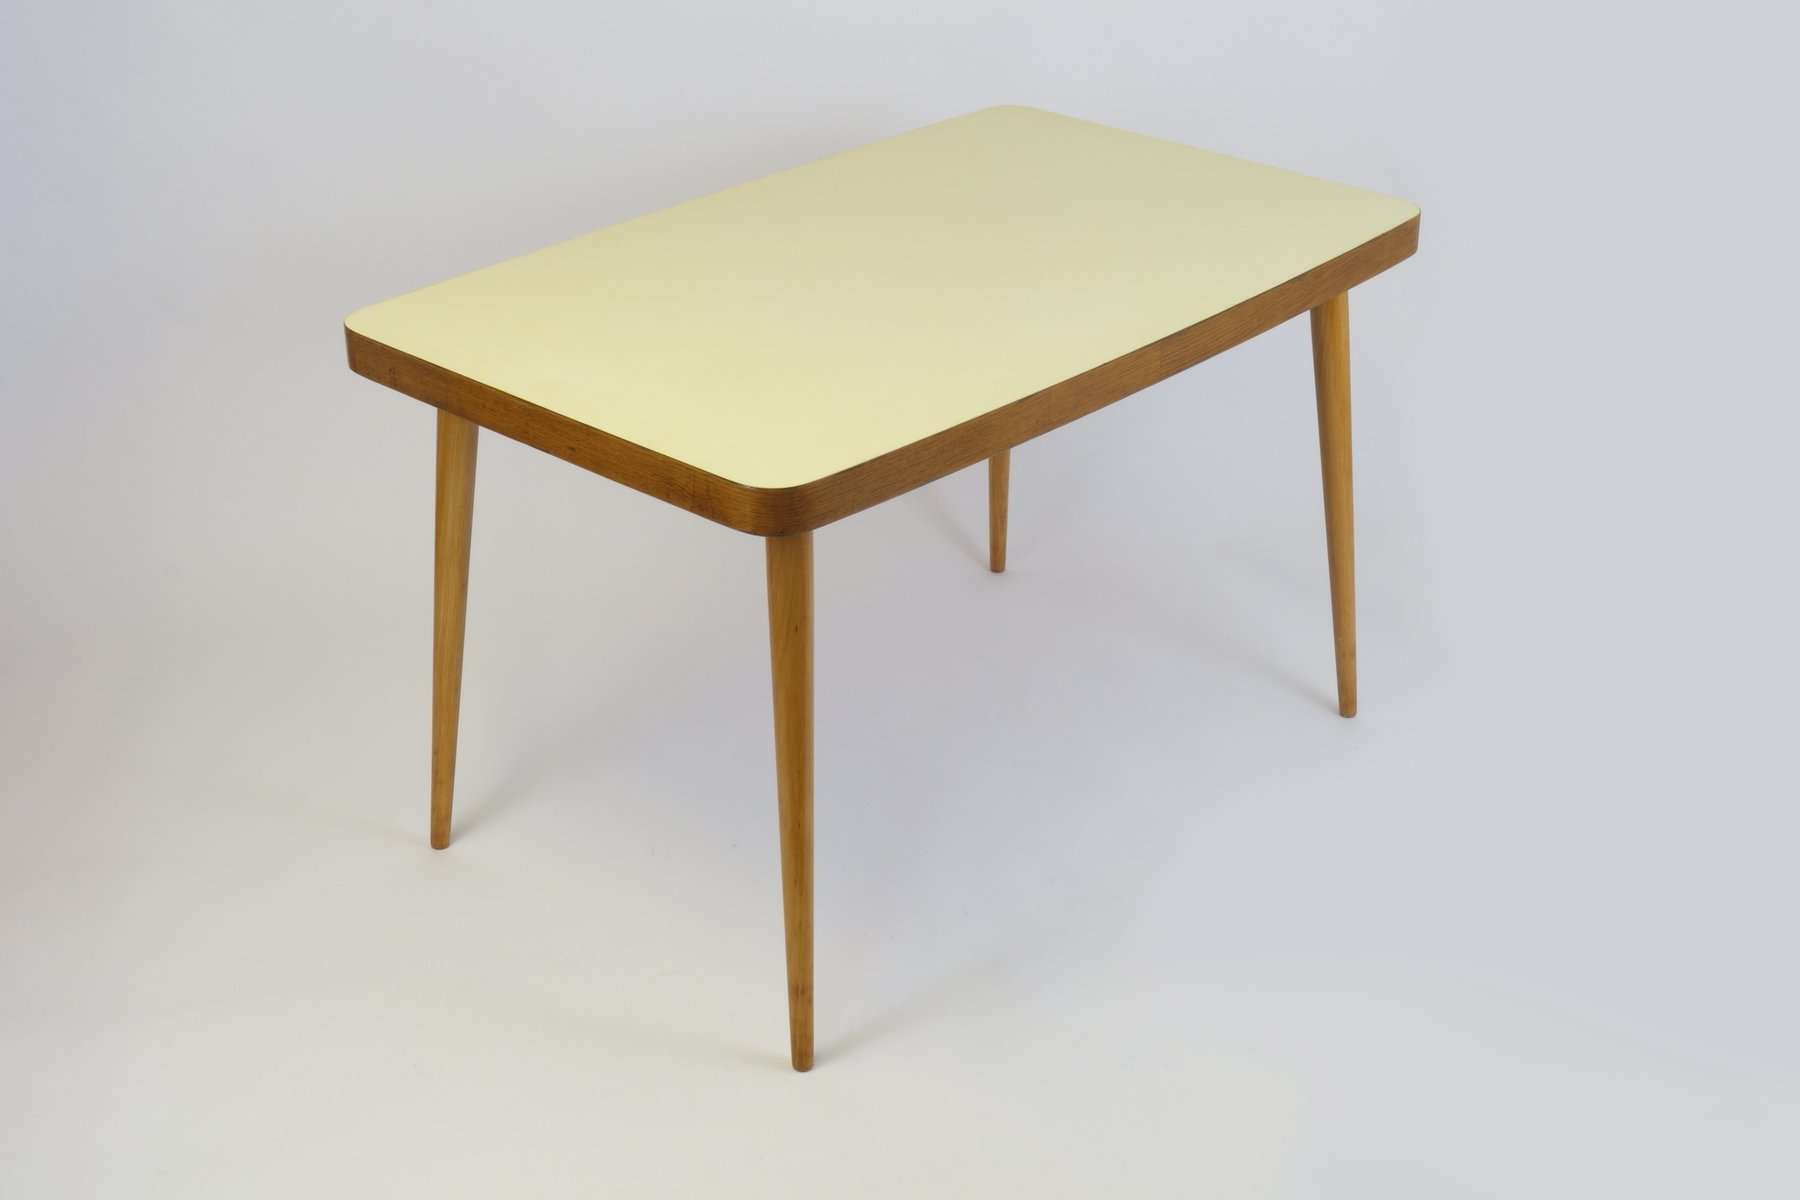 Yellow Top Wooden Dining Table 1950s for sale at Pamono : yellow top wooden dining table 1950s 3 from www.pamono.co.uk size 1800 x 1200 jpeg 38kB